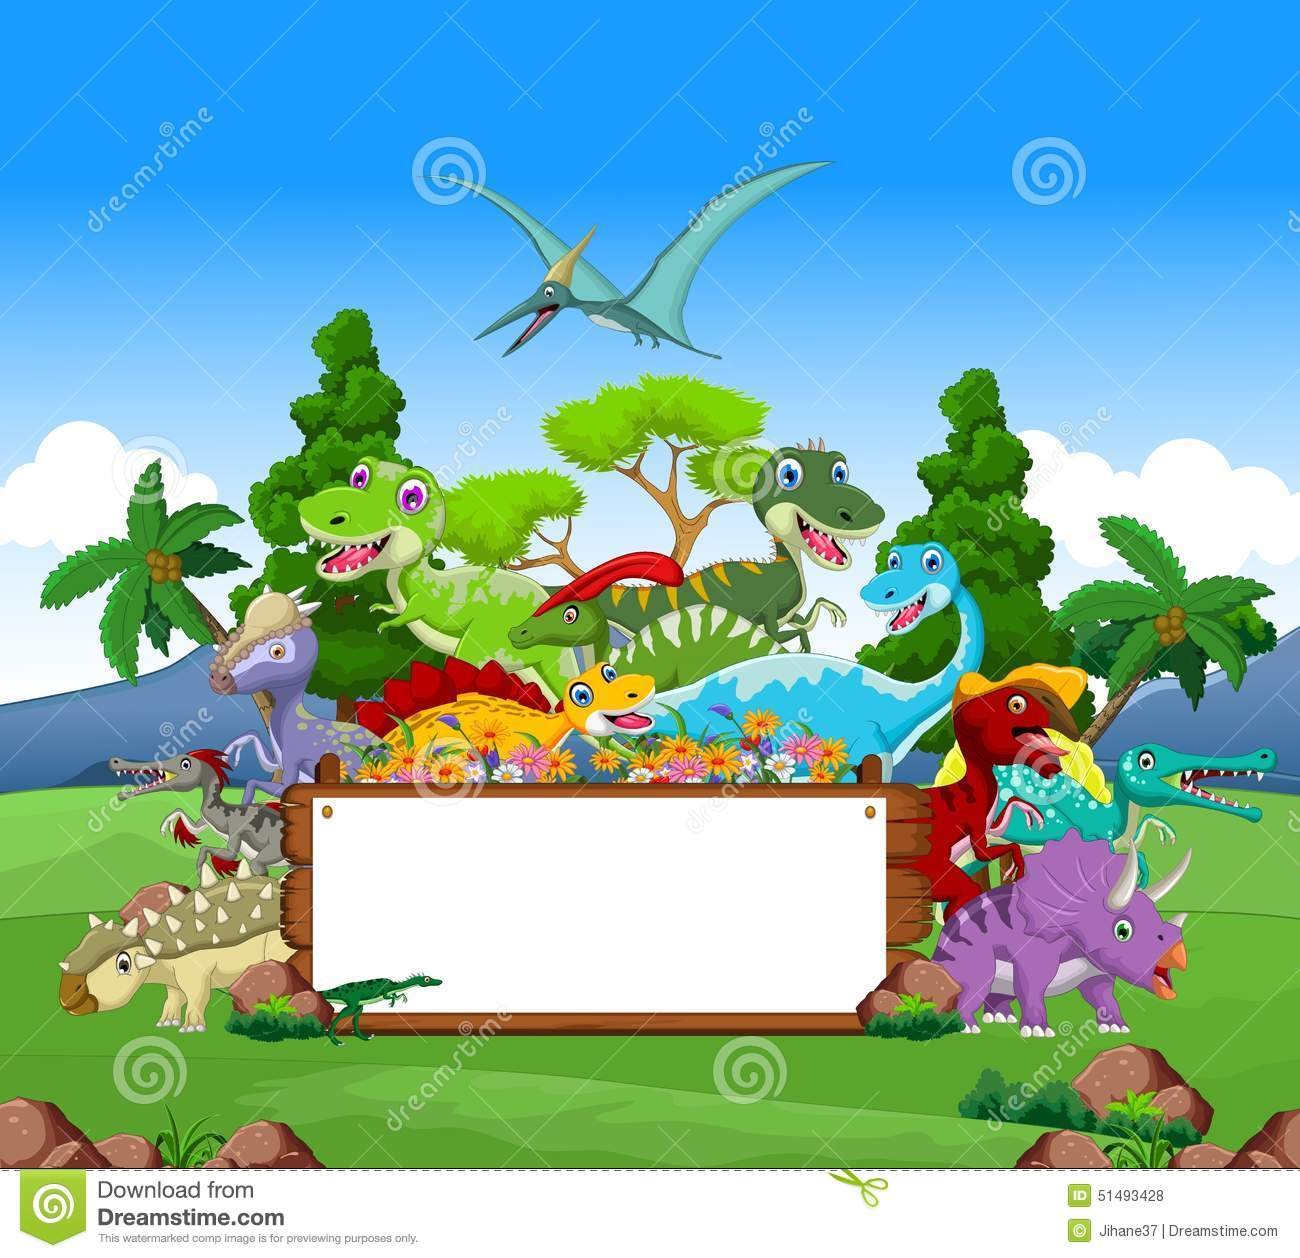 dinosaur cartoon with landscape background and blank sign stock illustration